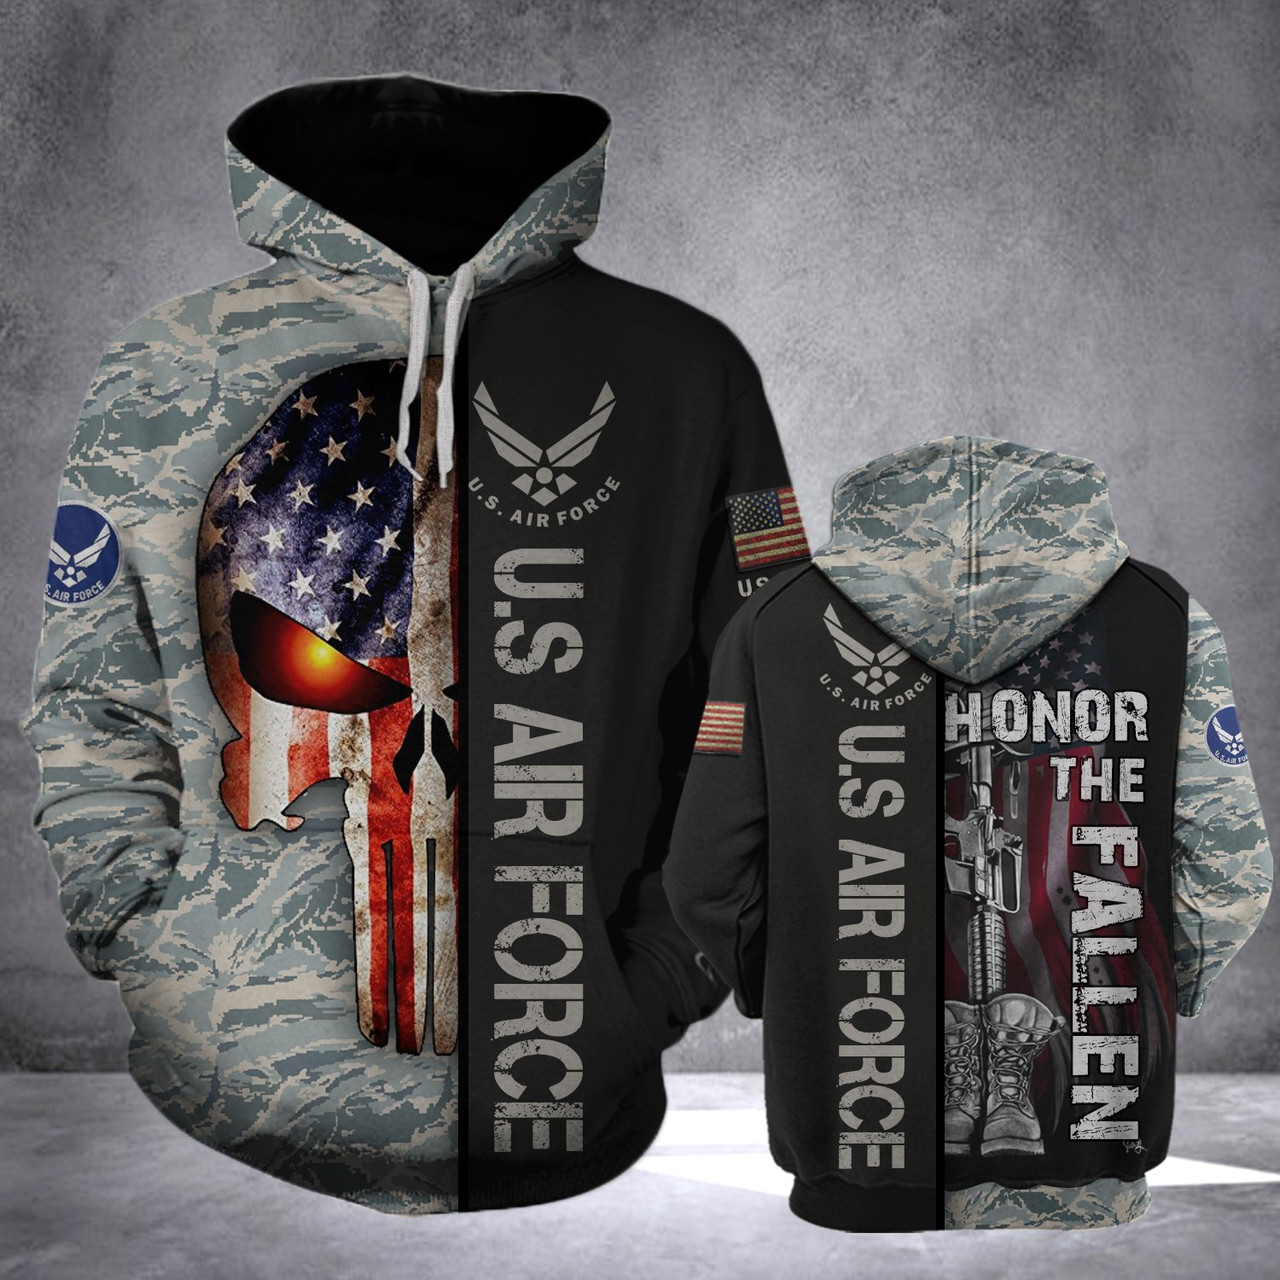 **(OFFICIAL-U.S.AIR-FORCE-VETERAN-PULLOVER-HOODIES/CLASSIC-PATRIOTIC-PUNISHER-SKULL & CLASSIC-DIGITAL-CAMO.DESIGN & OFFICIAL-AIR-FORCE-LOGOS/CUSTOM-3D-DETAILED-GRAPHIC-PRINTED/DOUBLE-SIDED-ALL-OVER-DESIGNED/WARM-PREMIUM-PULLOVER-AIR-FORCE-HOODIES)**